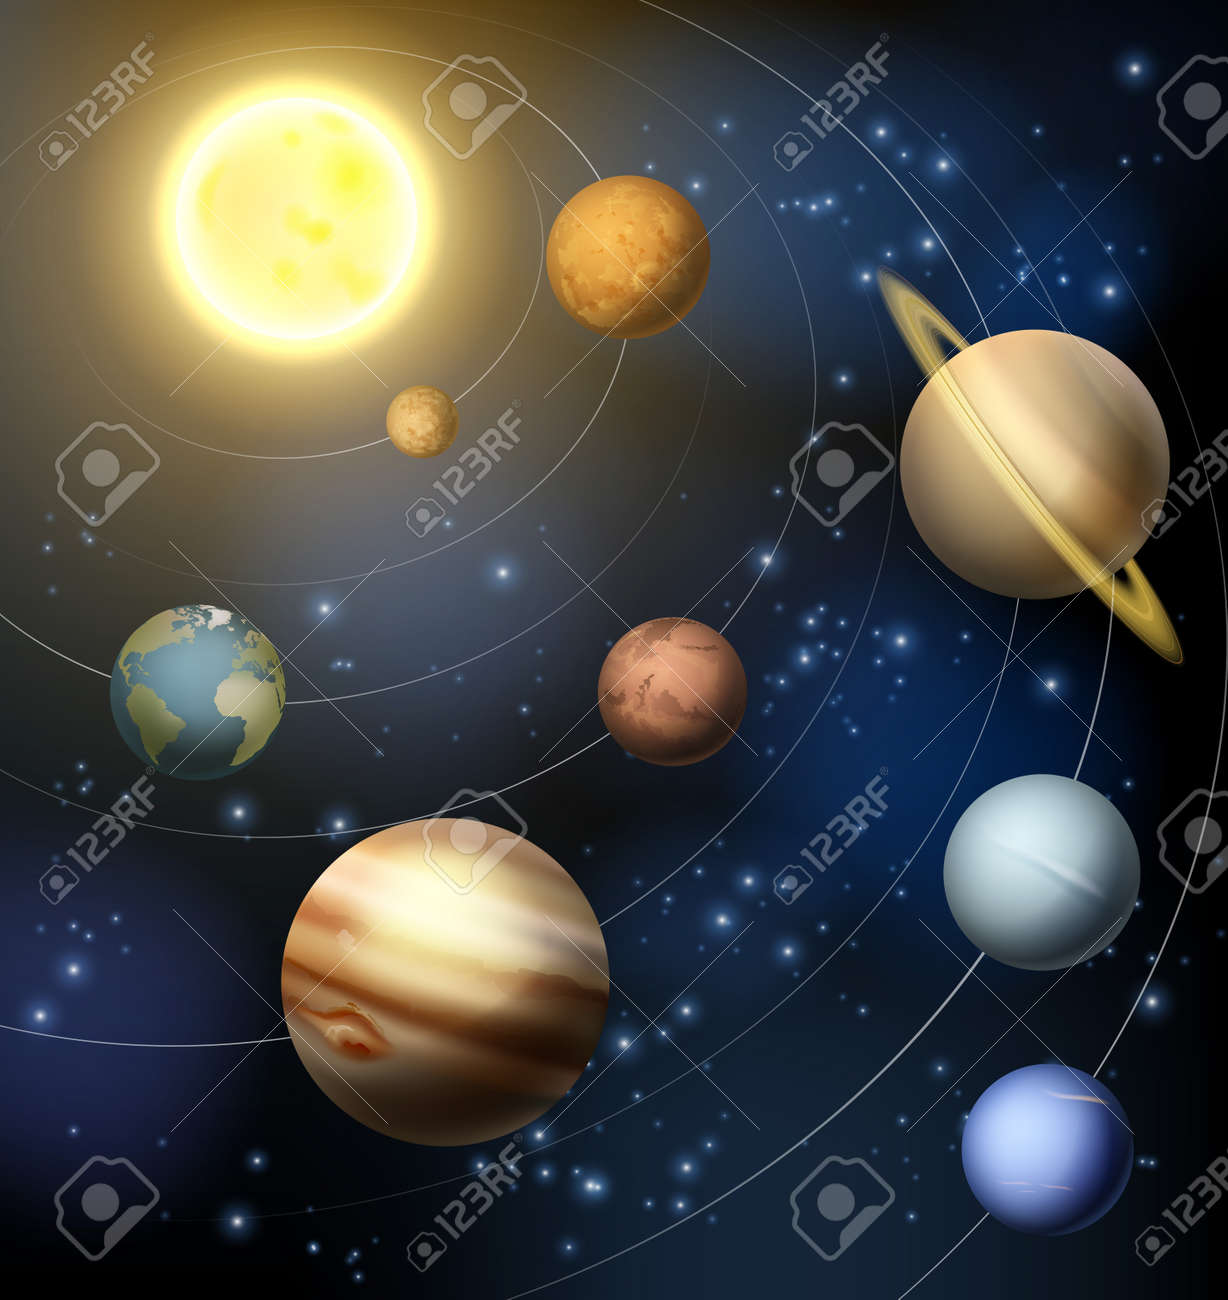 Planets of the solar system around the sun illustration - 38198349